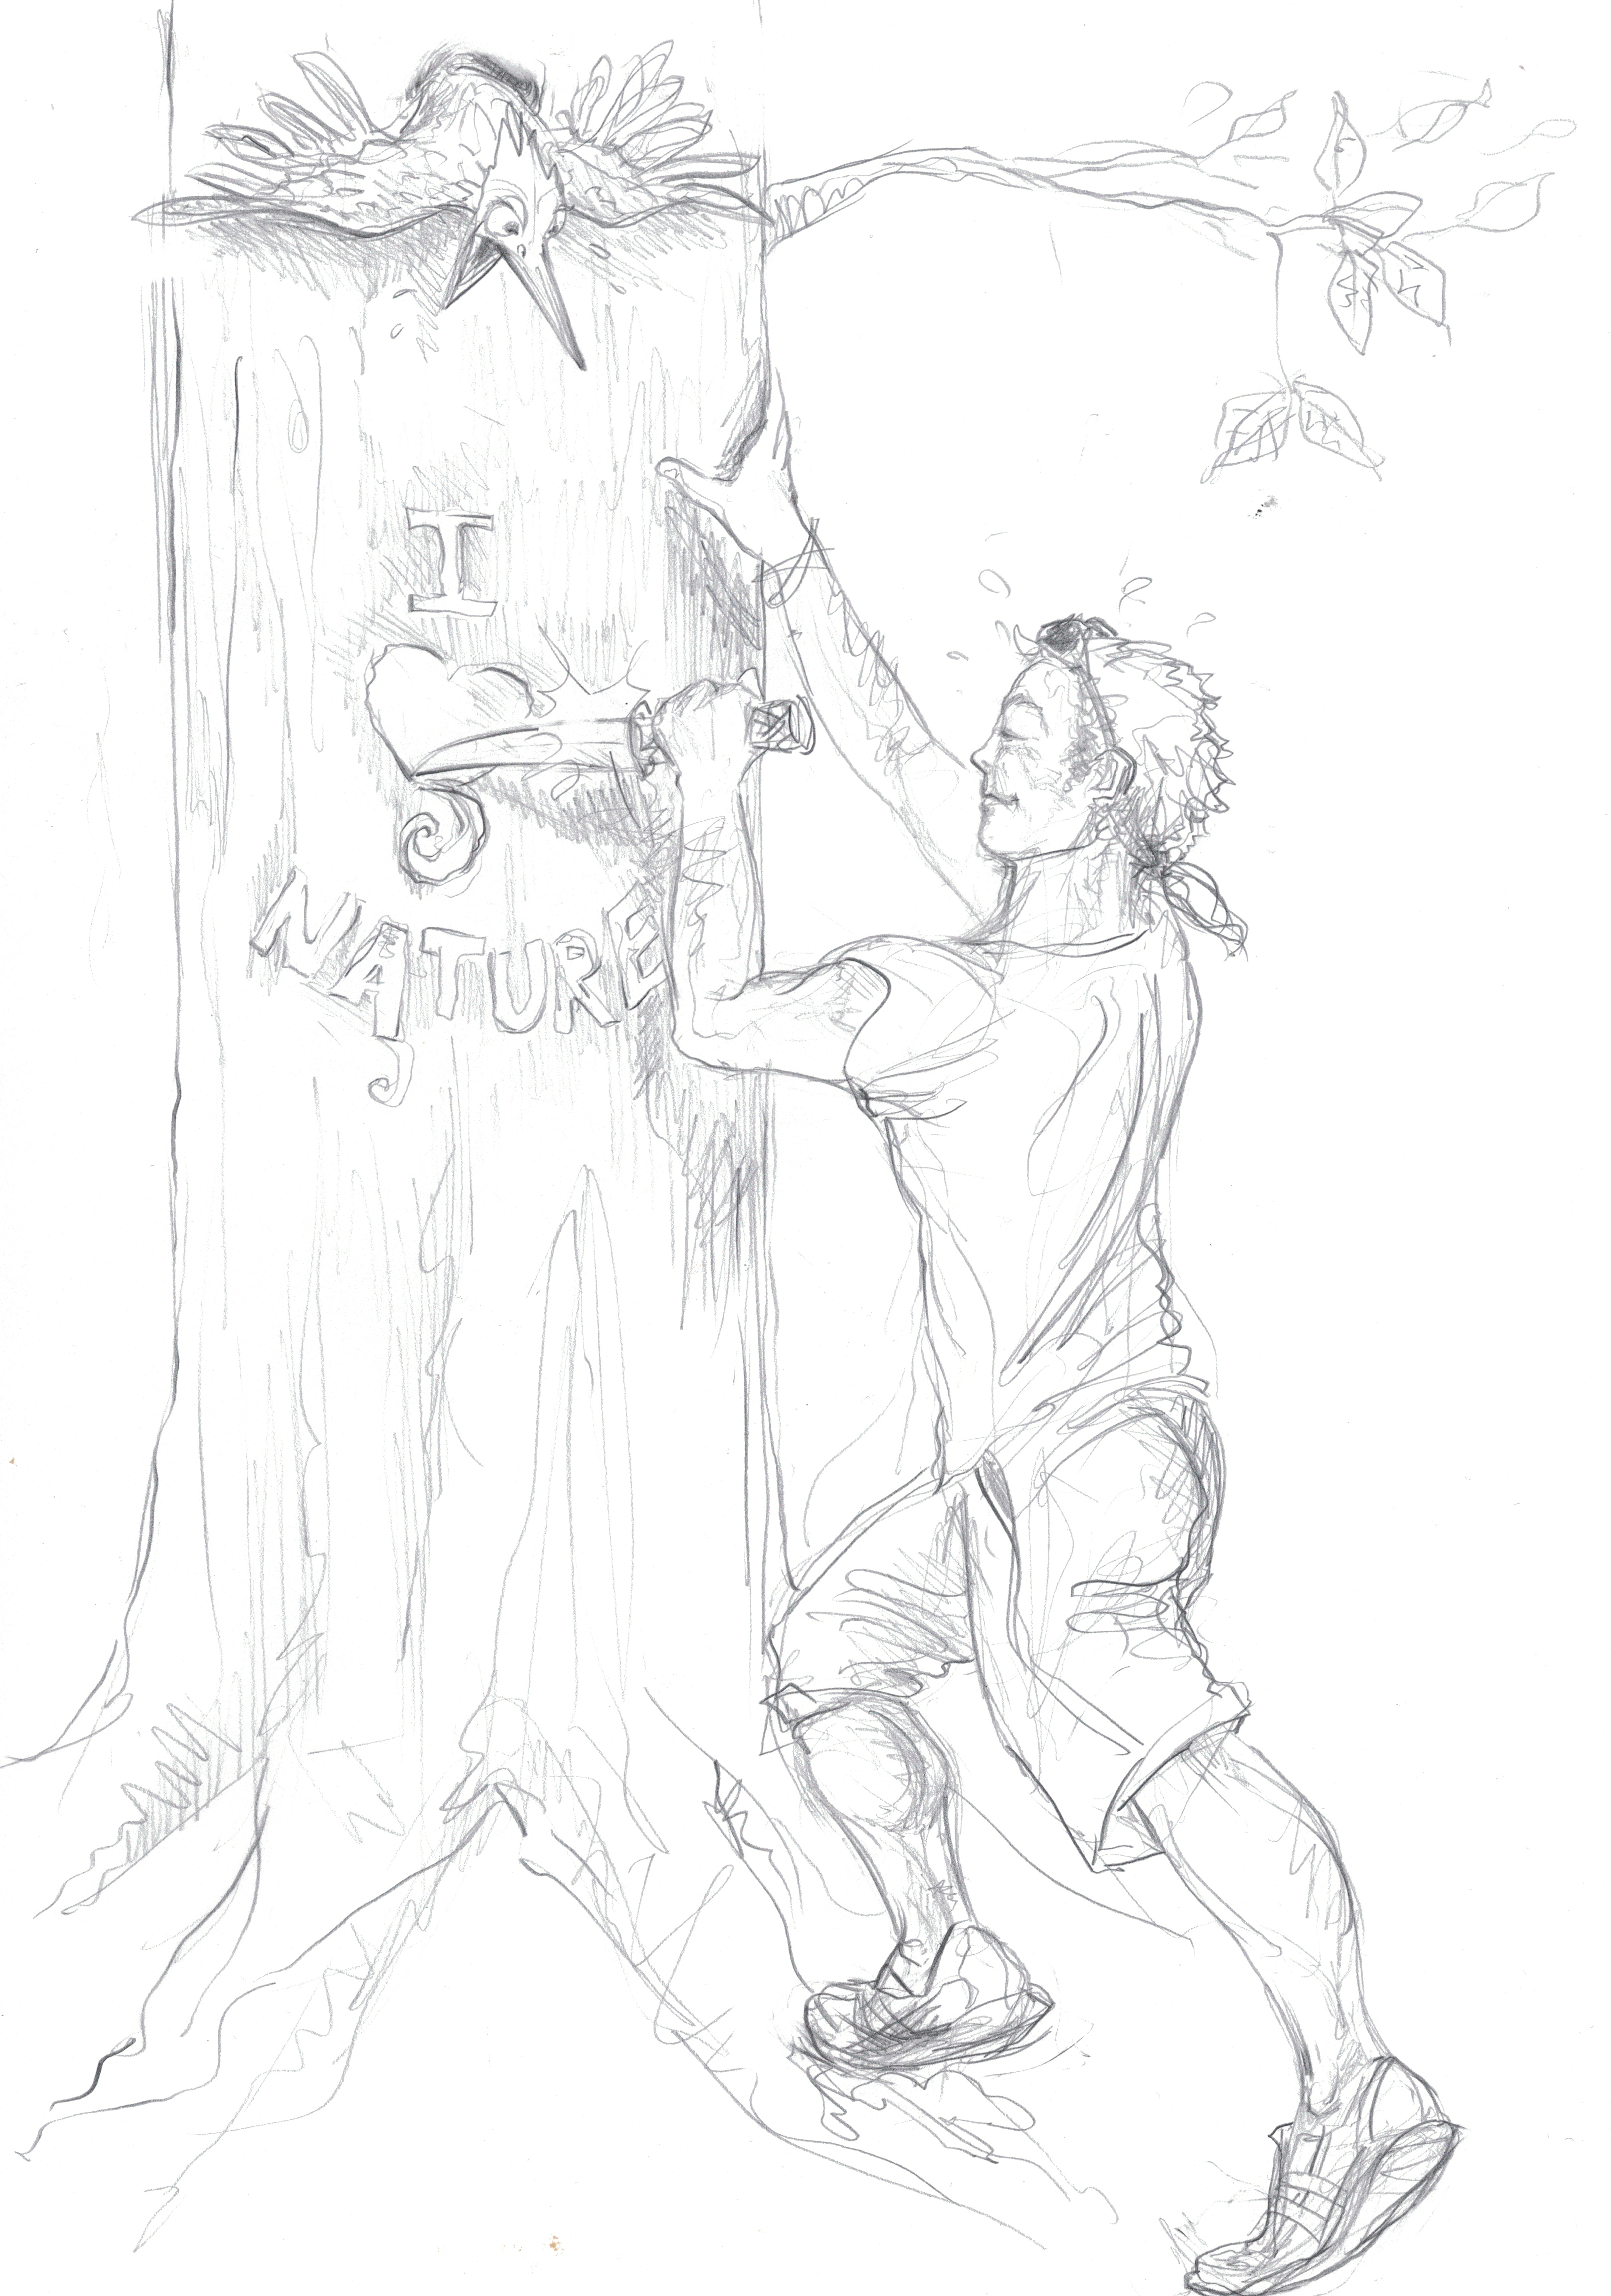 Jogger carving into a tree / pencil on paper